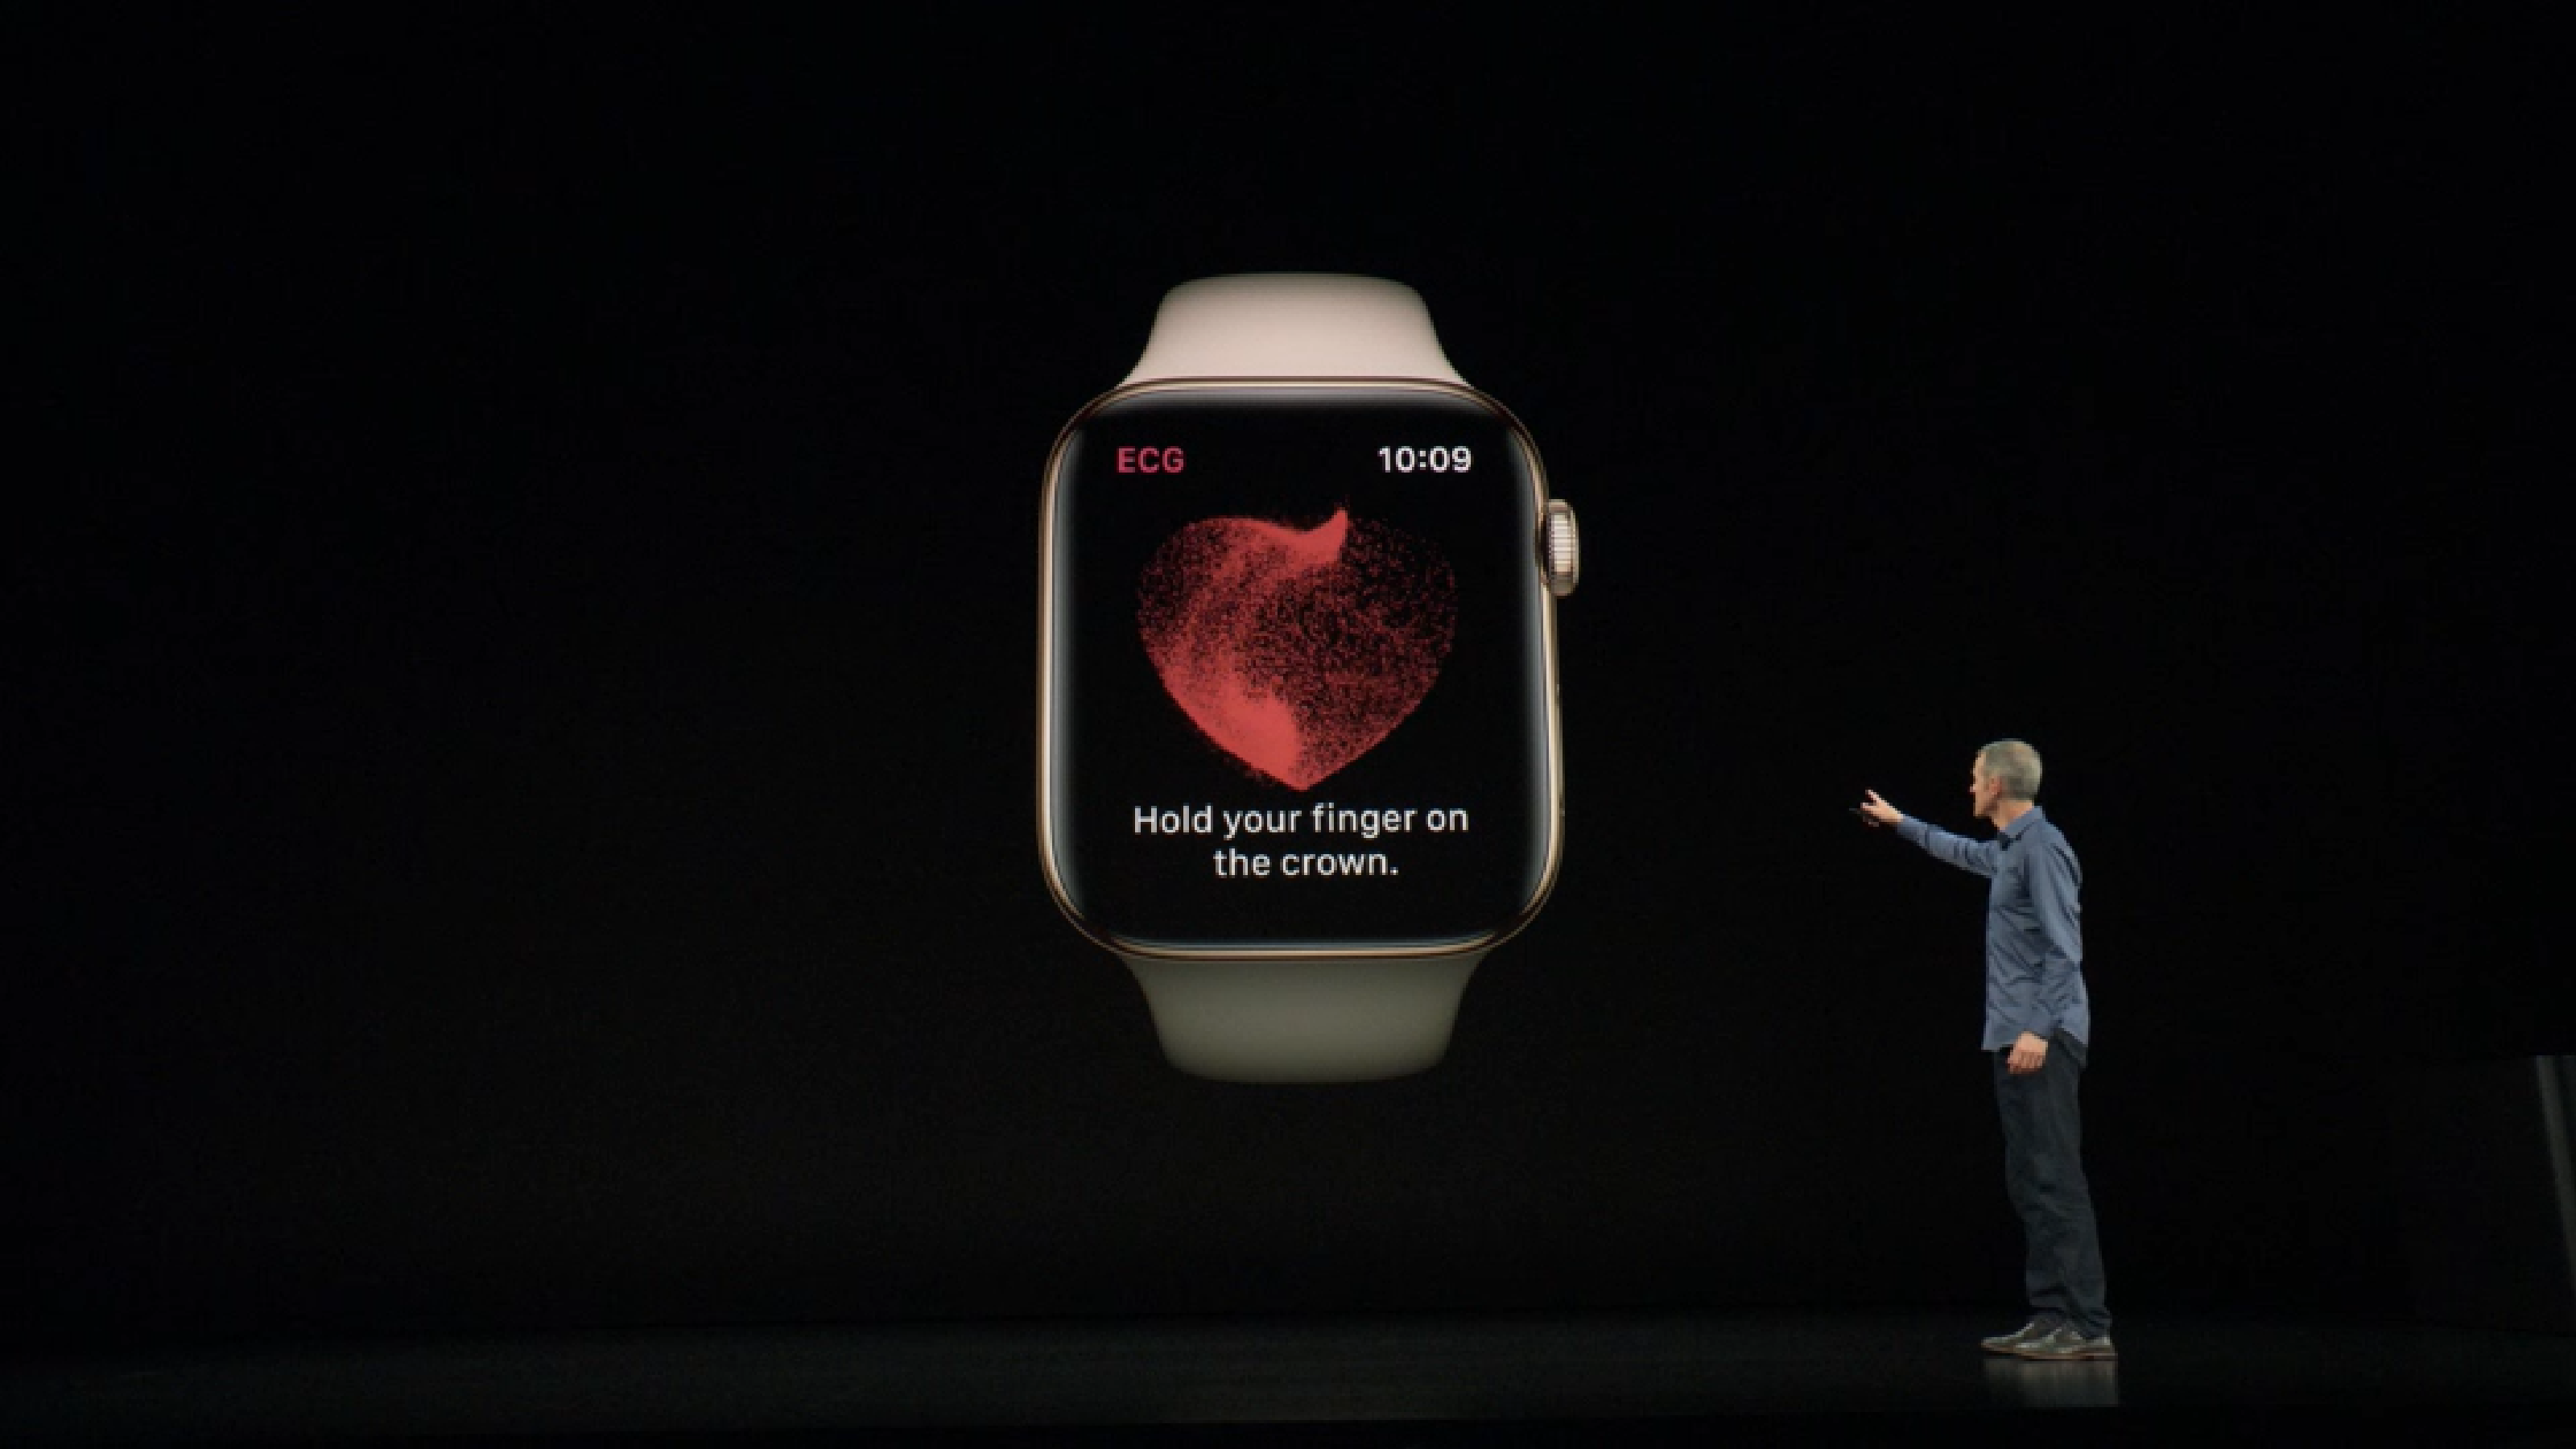 Apple Watch ECG: how to take an electrocardiogram with your